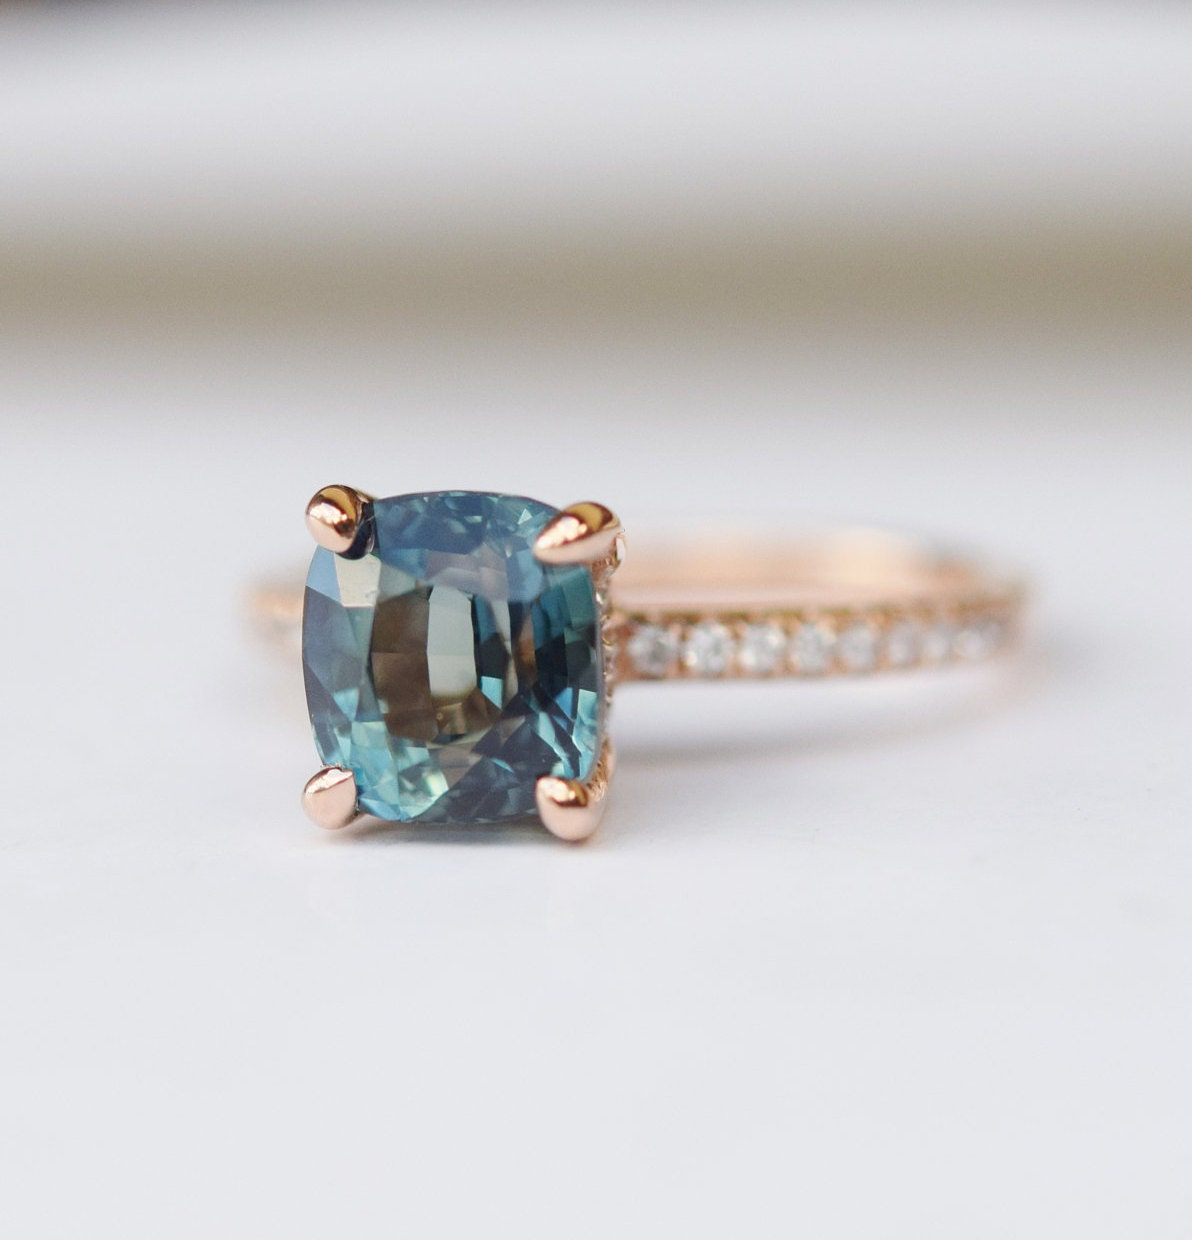 teal ring engagement pinterest sapphire blue best green on ideas montana rings